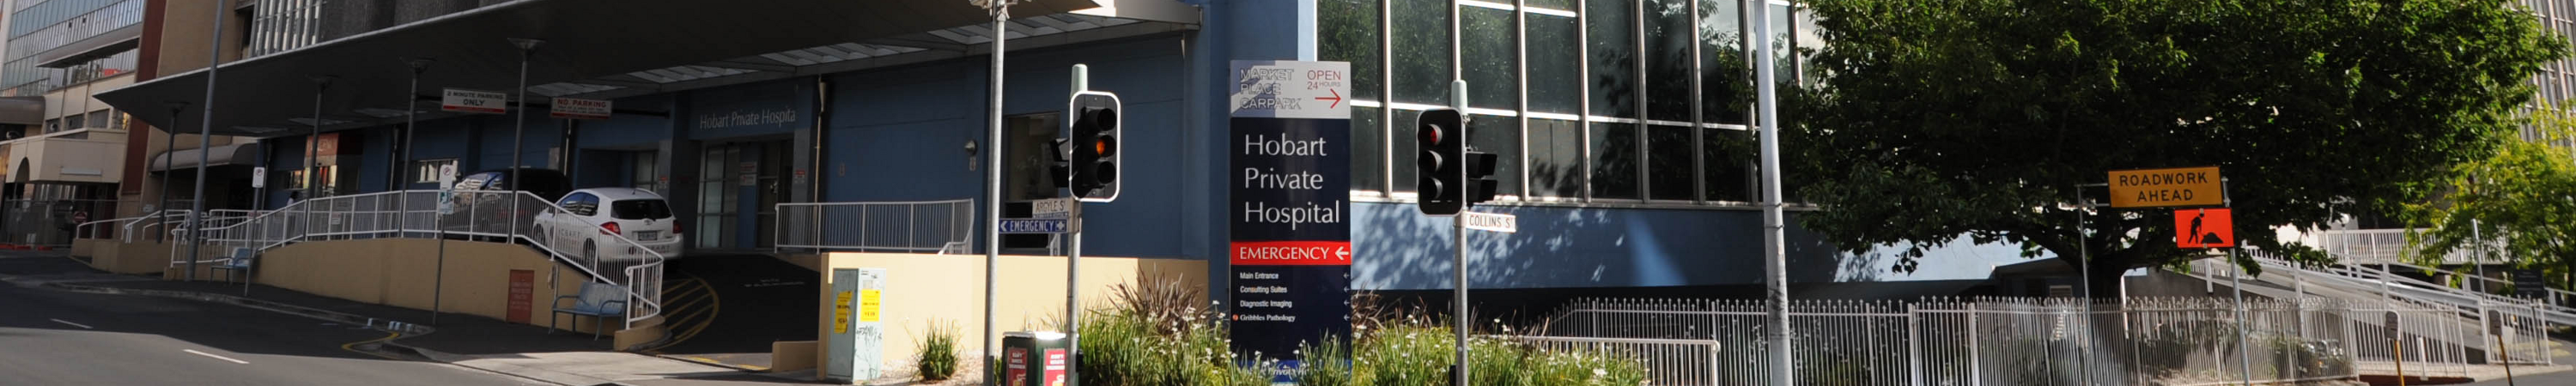 Hobart Private Hospital